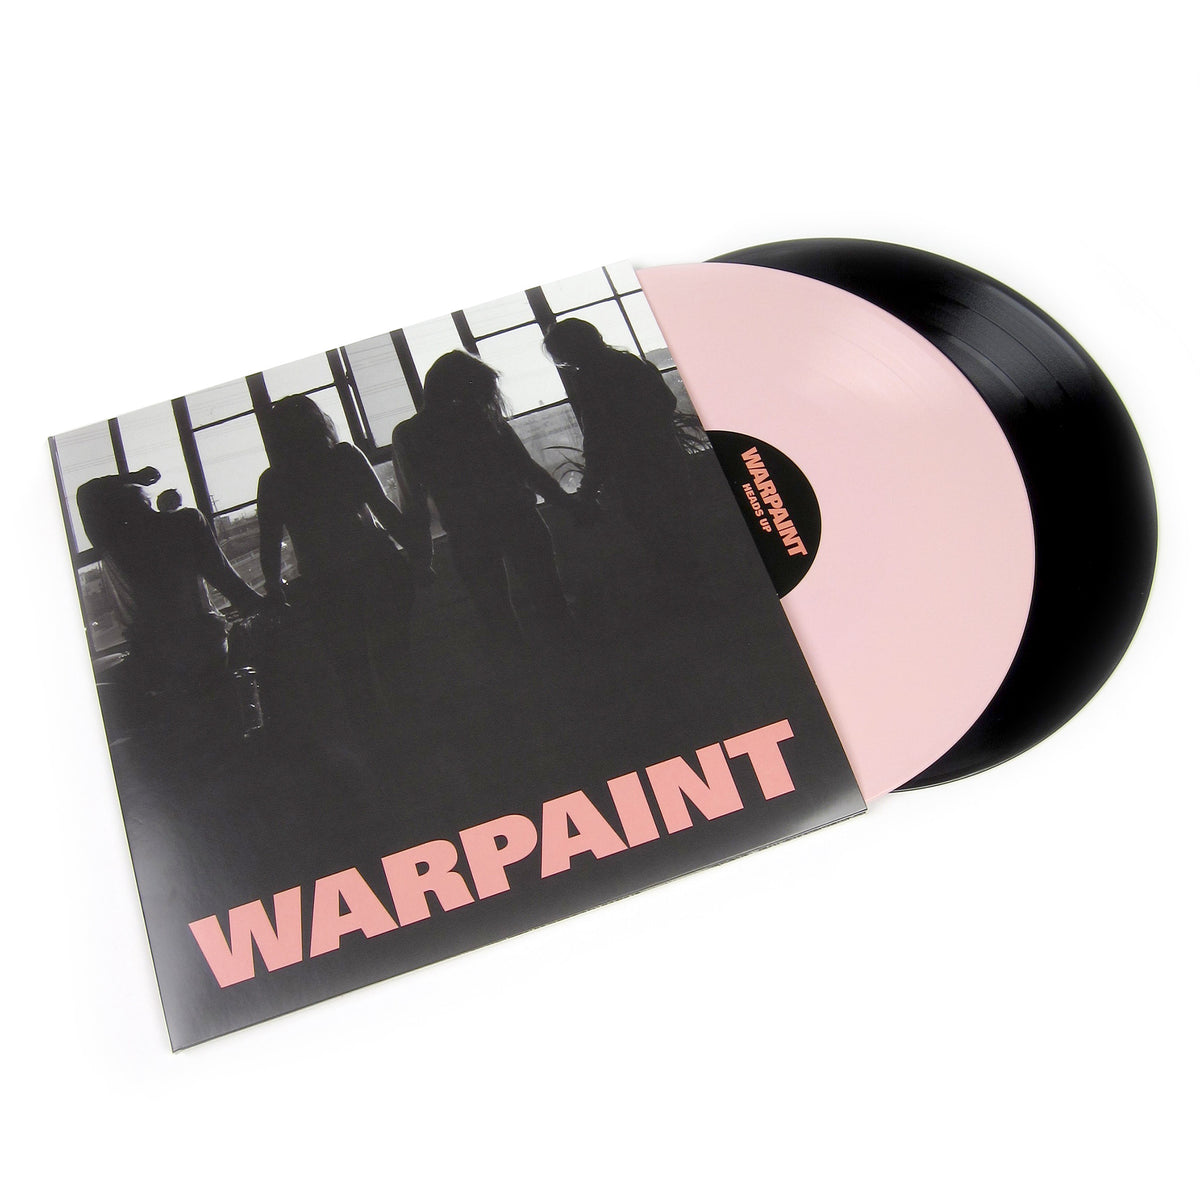 Warpaint: Heads Up (Indie Exclusive Colored Vinyl) Vinyl LP